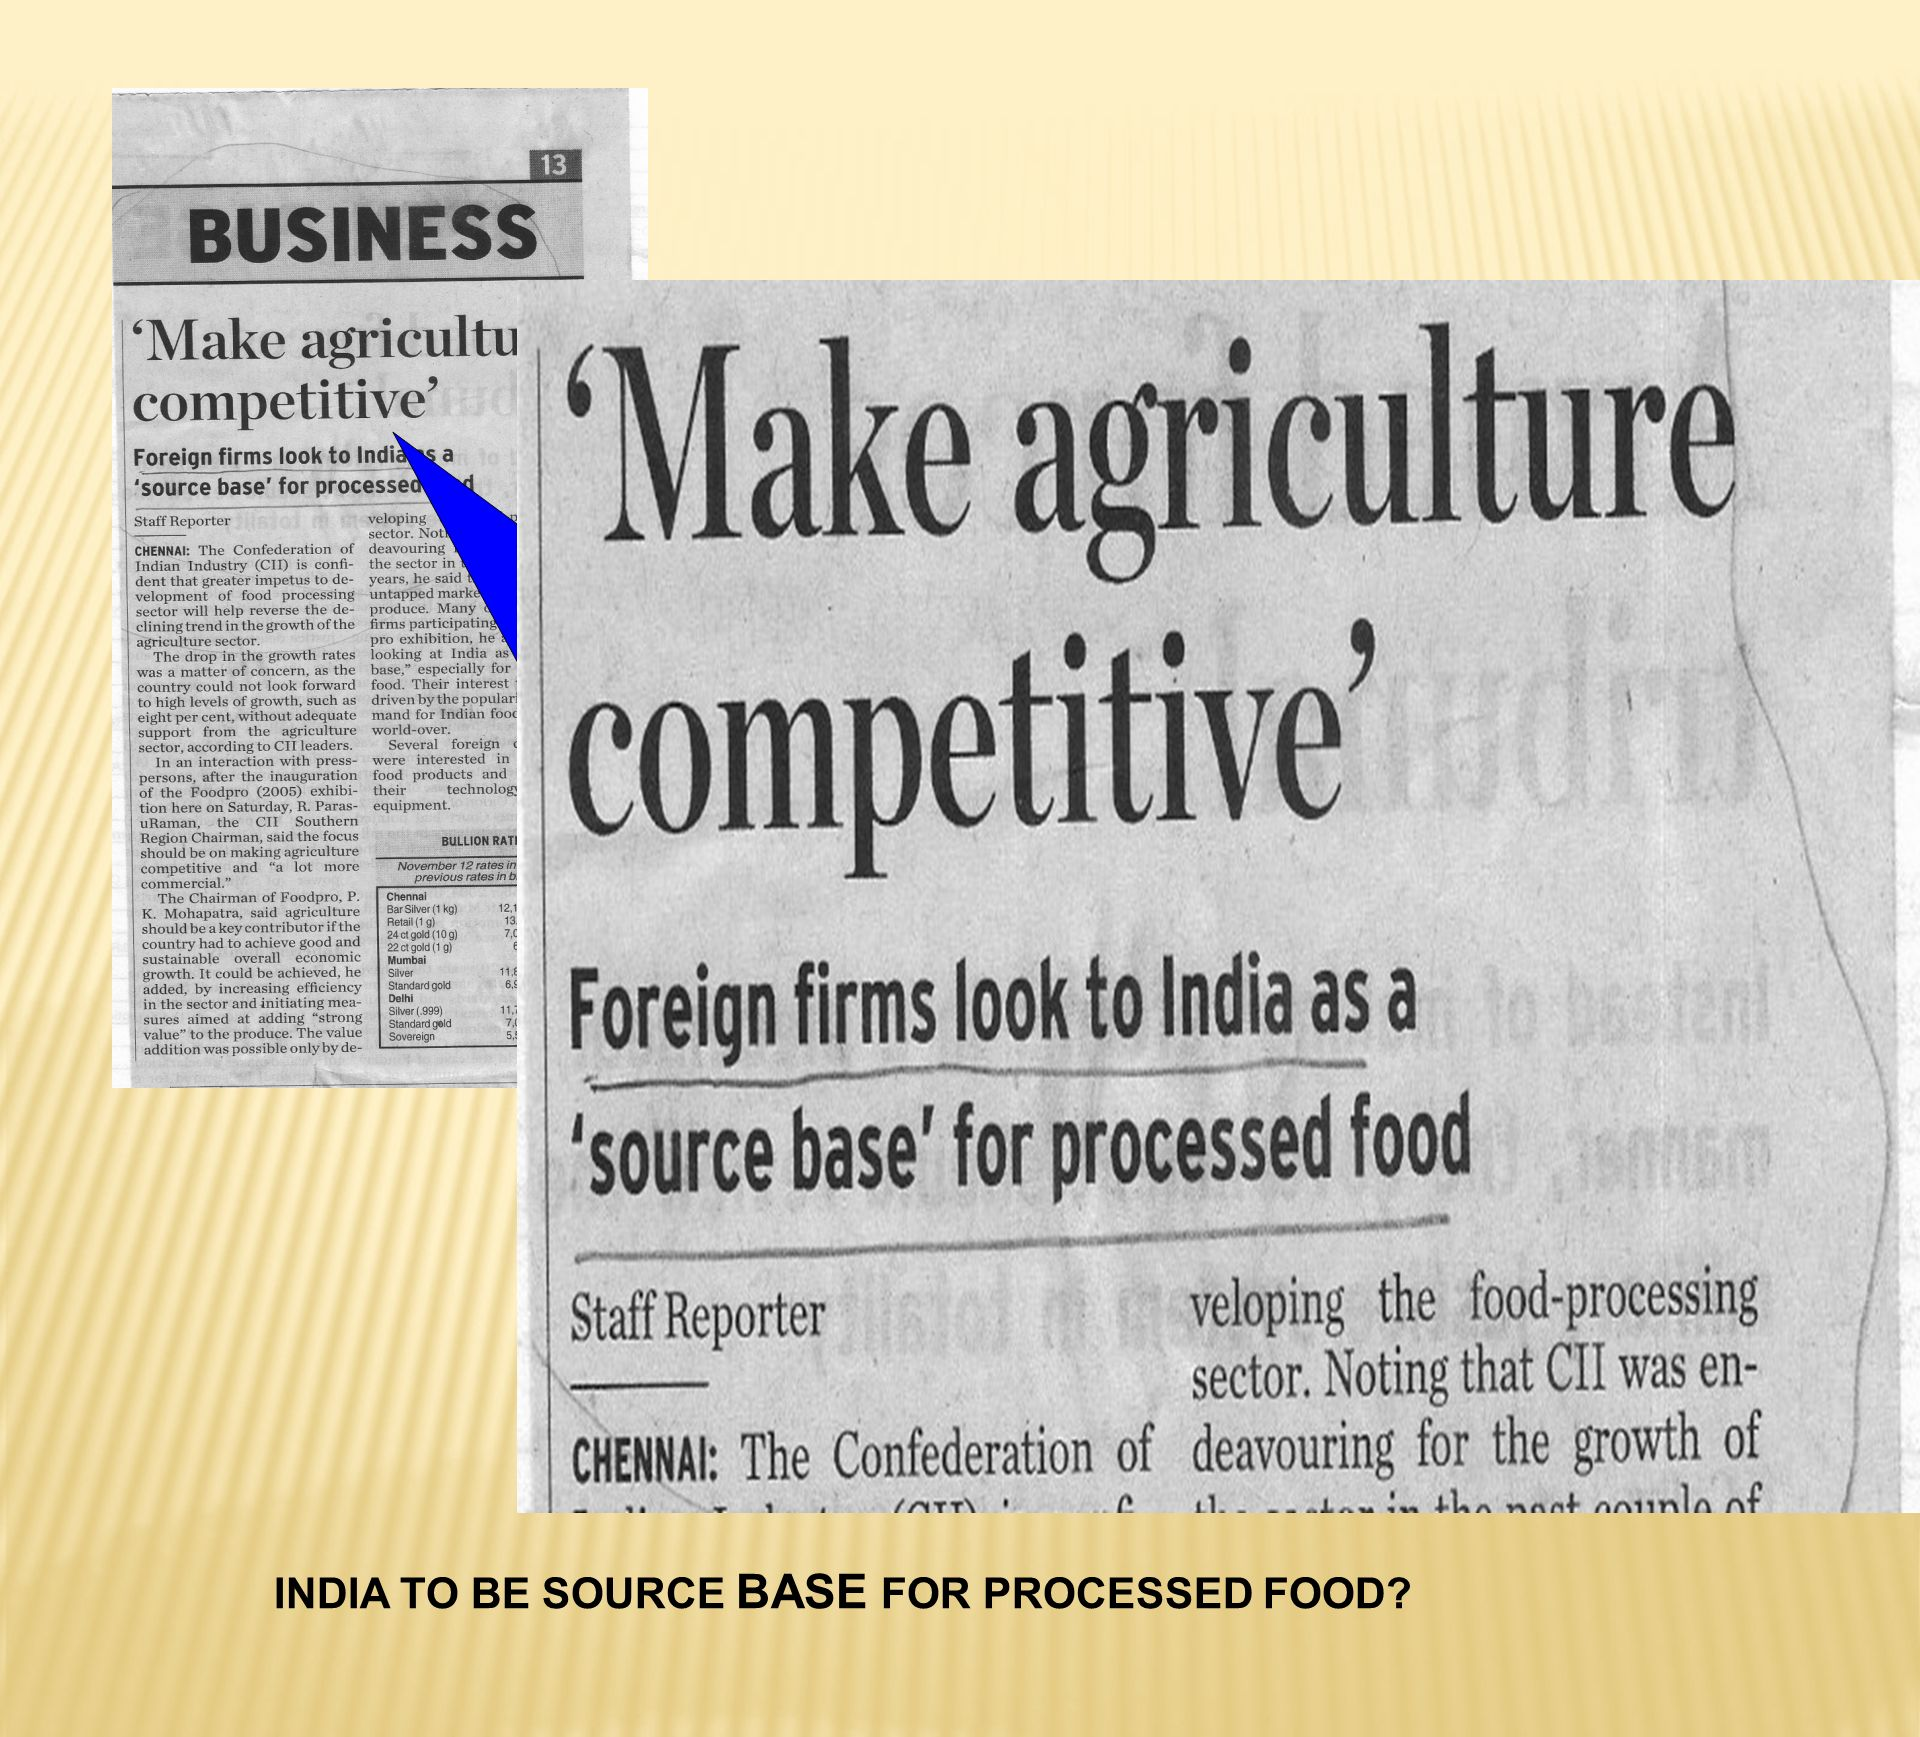 INDIA TO BE SOURCE BASE FOR PROCESSED FOOD